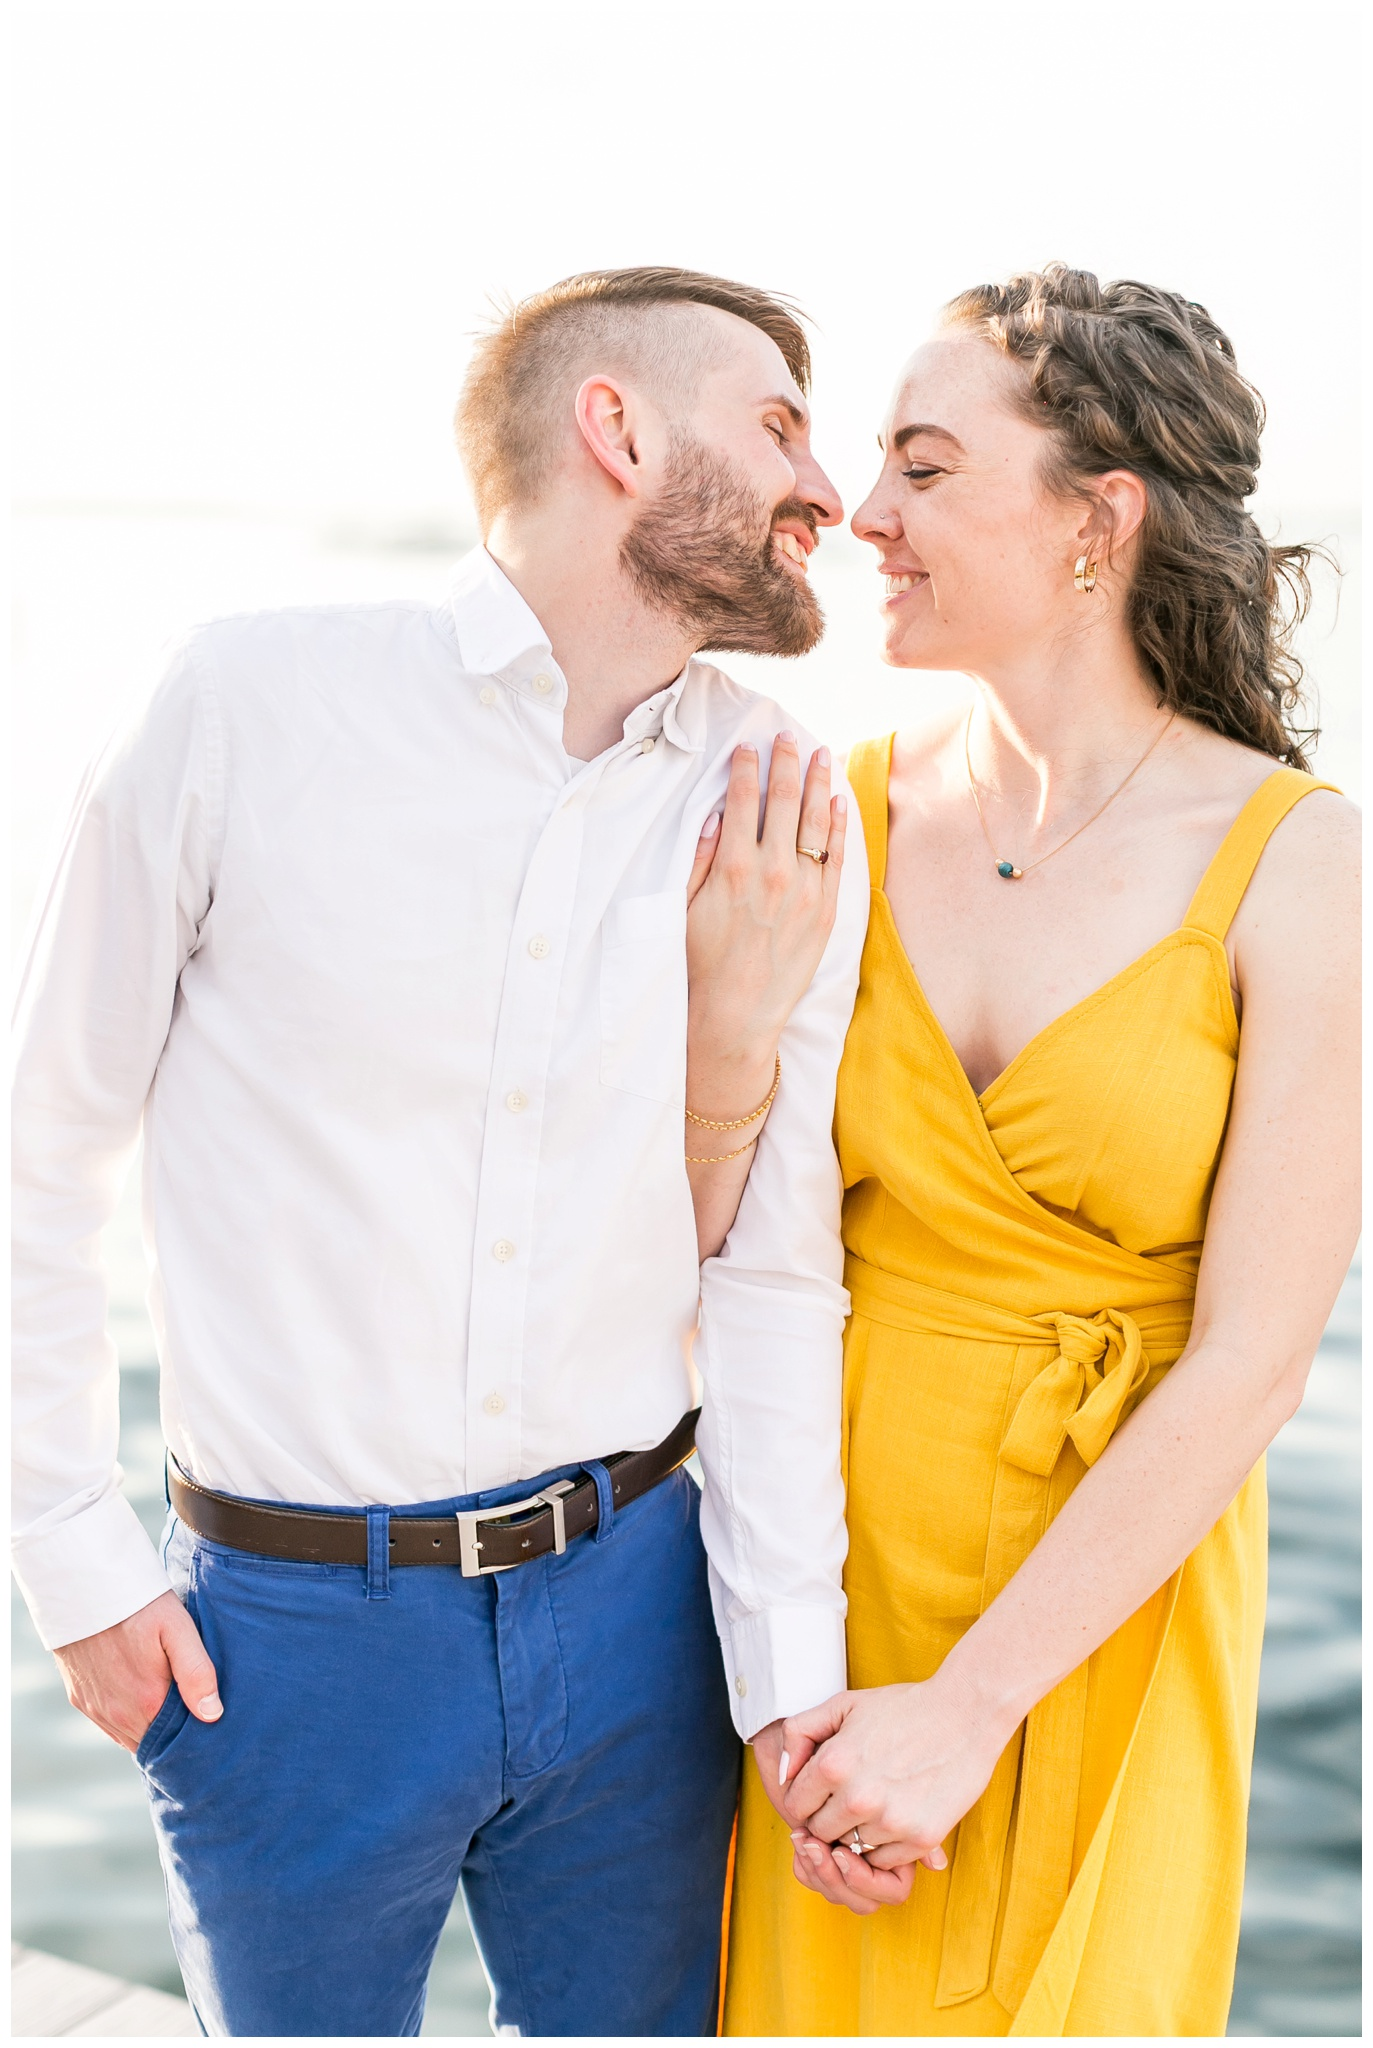 memorial_union_engagement_session_madison_wisconsin_photographers_3815.jpg